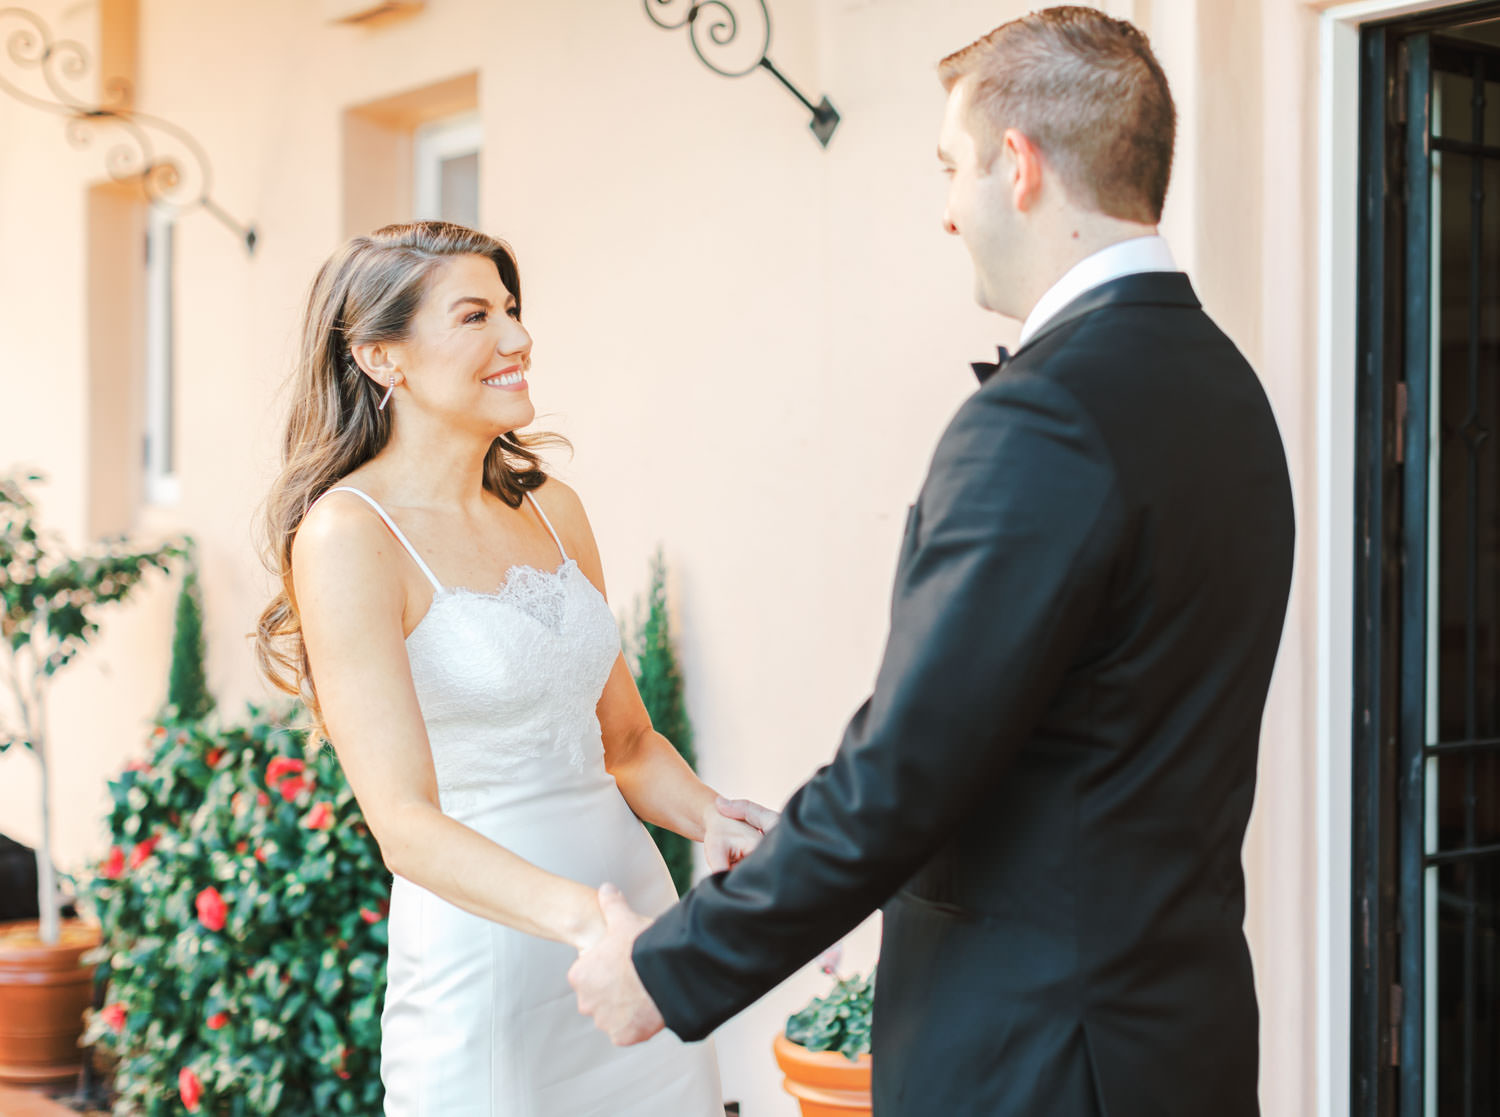 Bride and groom smiling after first look in front of pink walls, Intimate Wedding at La Valencia Hotel in La Jolla by Cavin Elizabeth Photography